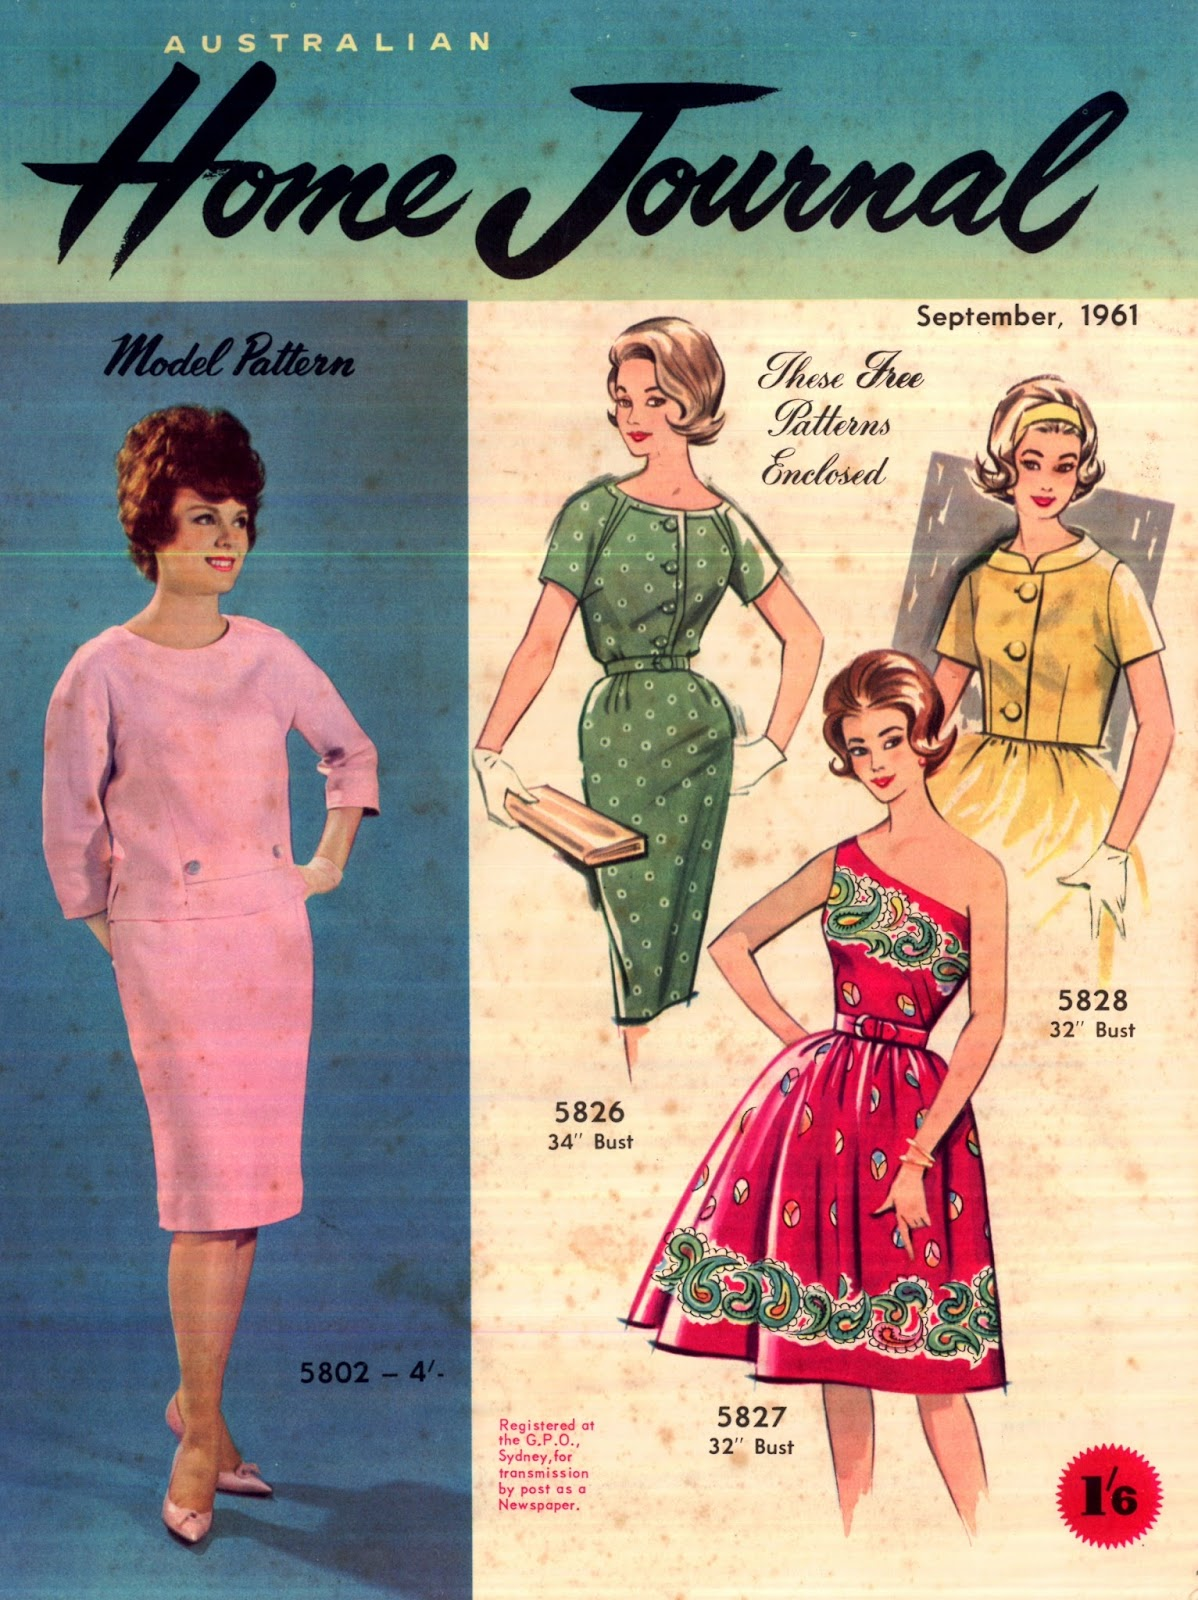 Kitten Vintage: The Winners...and 1961 Fashion